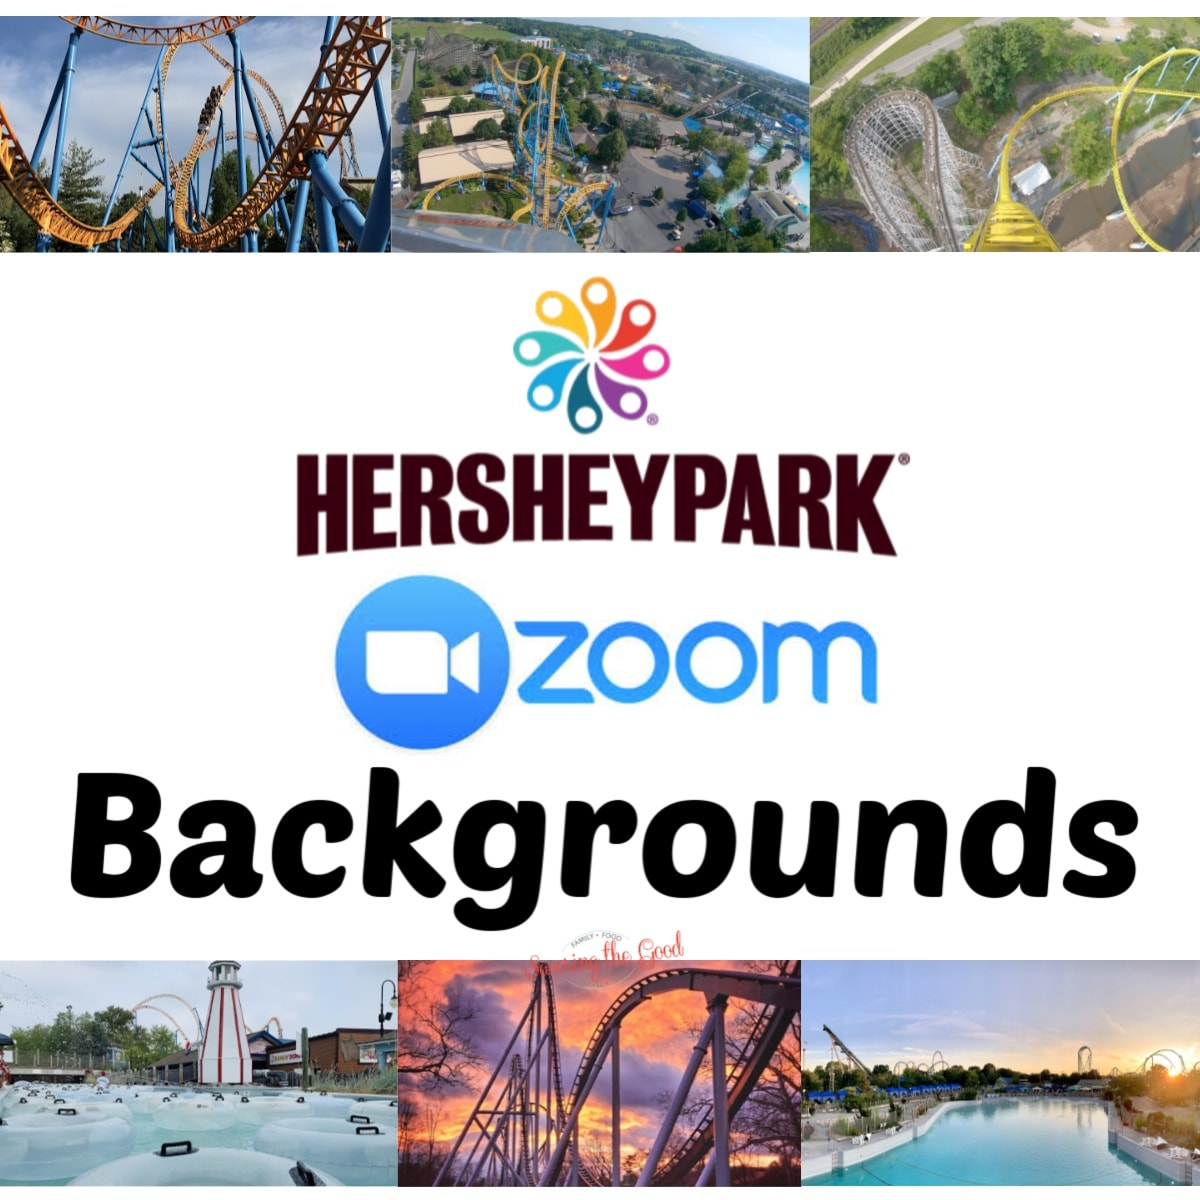 Hersheypark Rollercoaster Backgrounds for zoom image